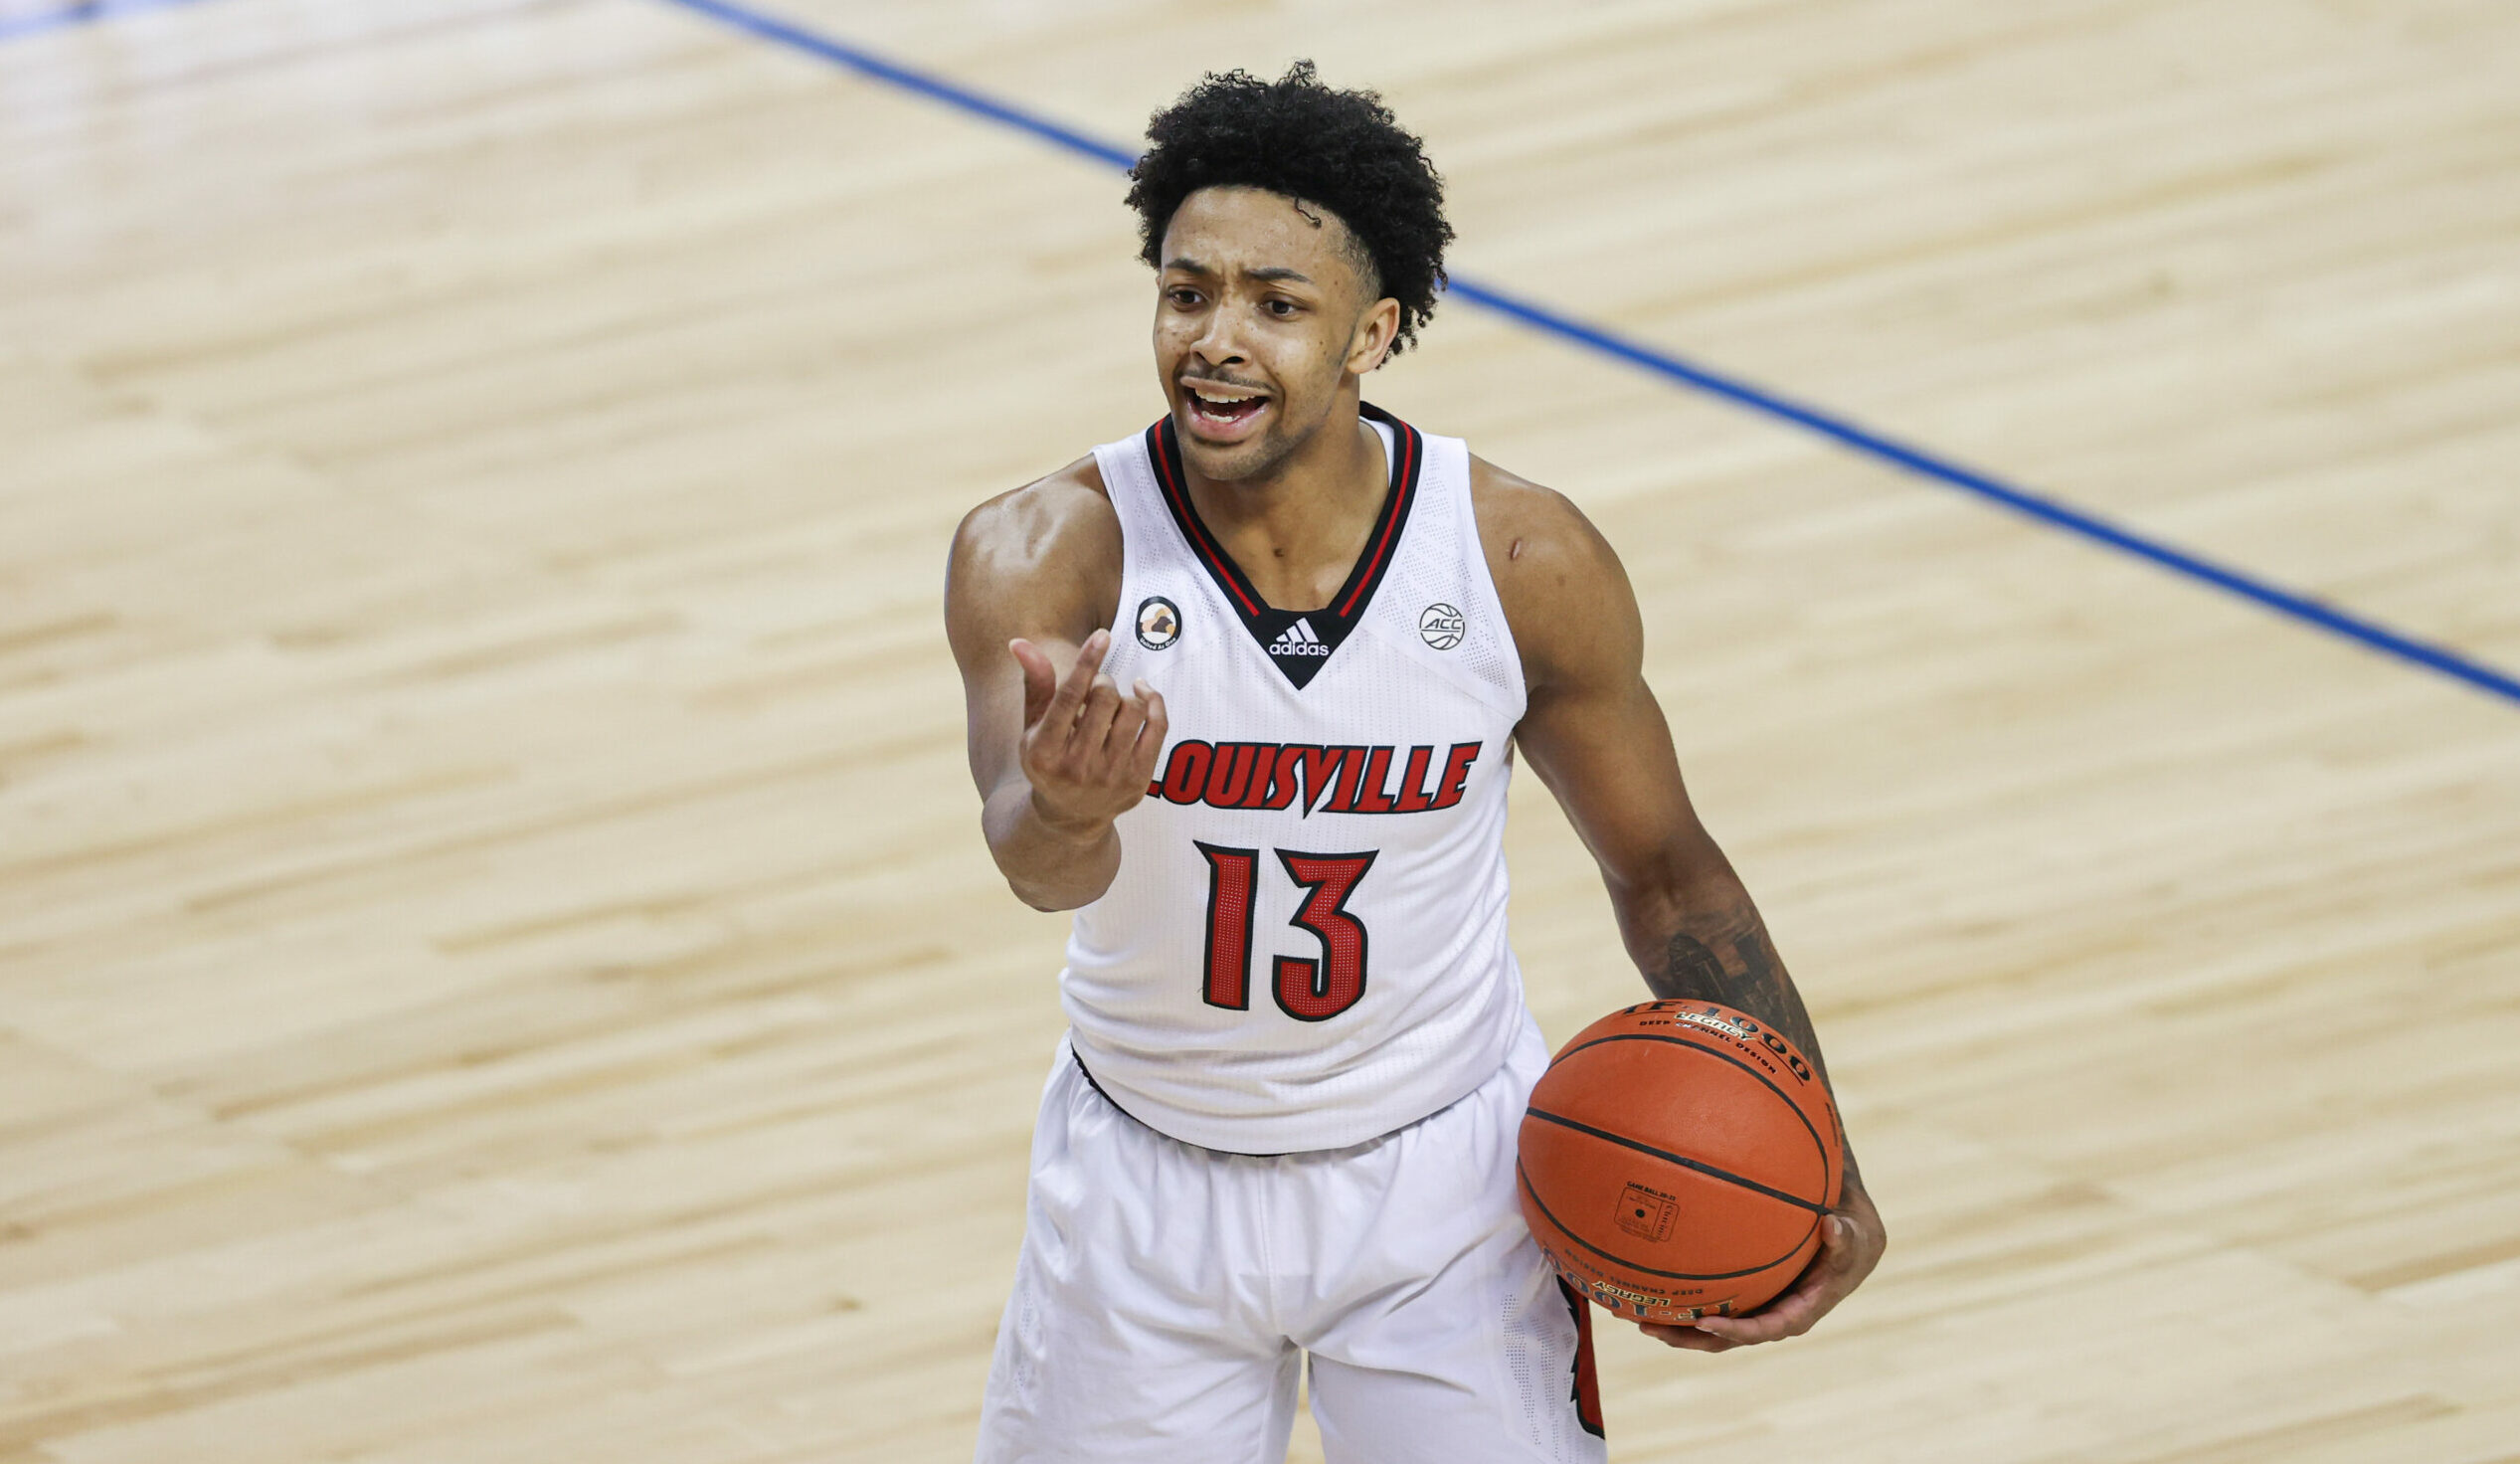 Louisville's David Johnson to enter NBA draft, forego eligibility